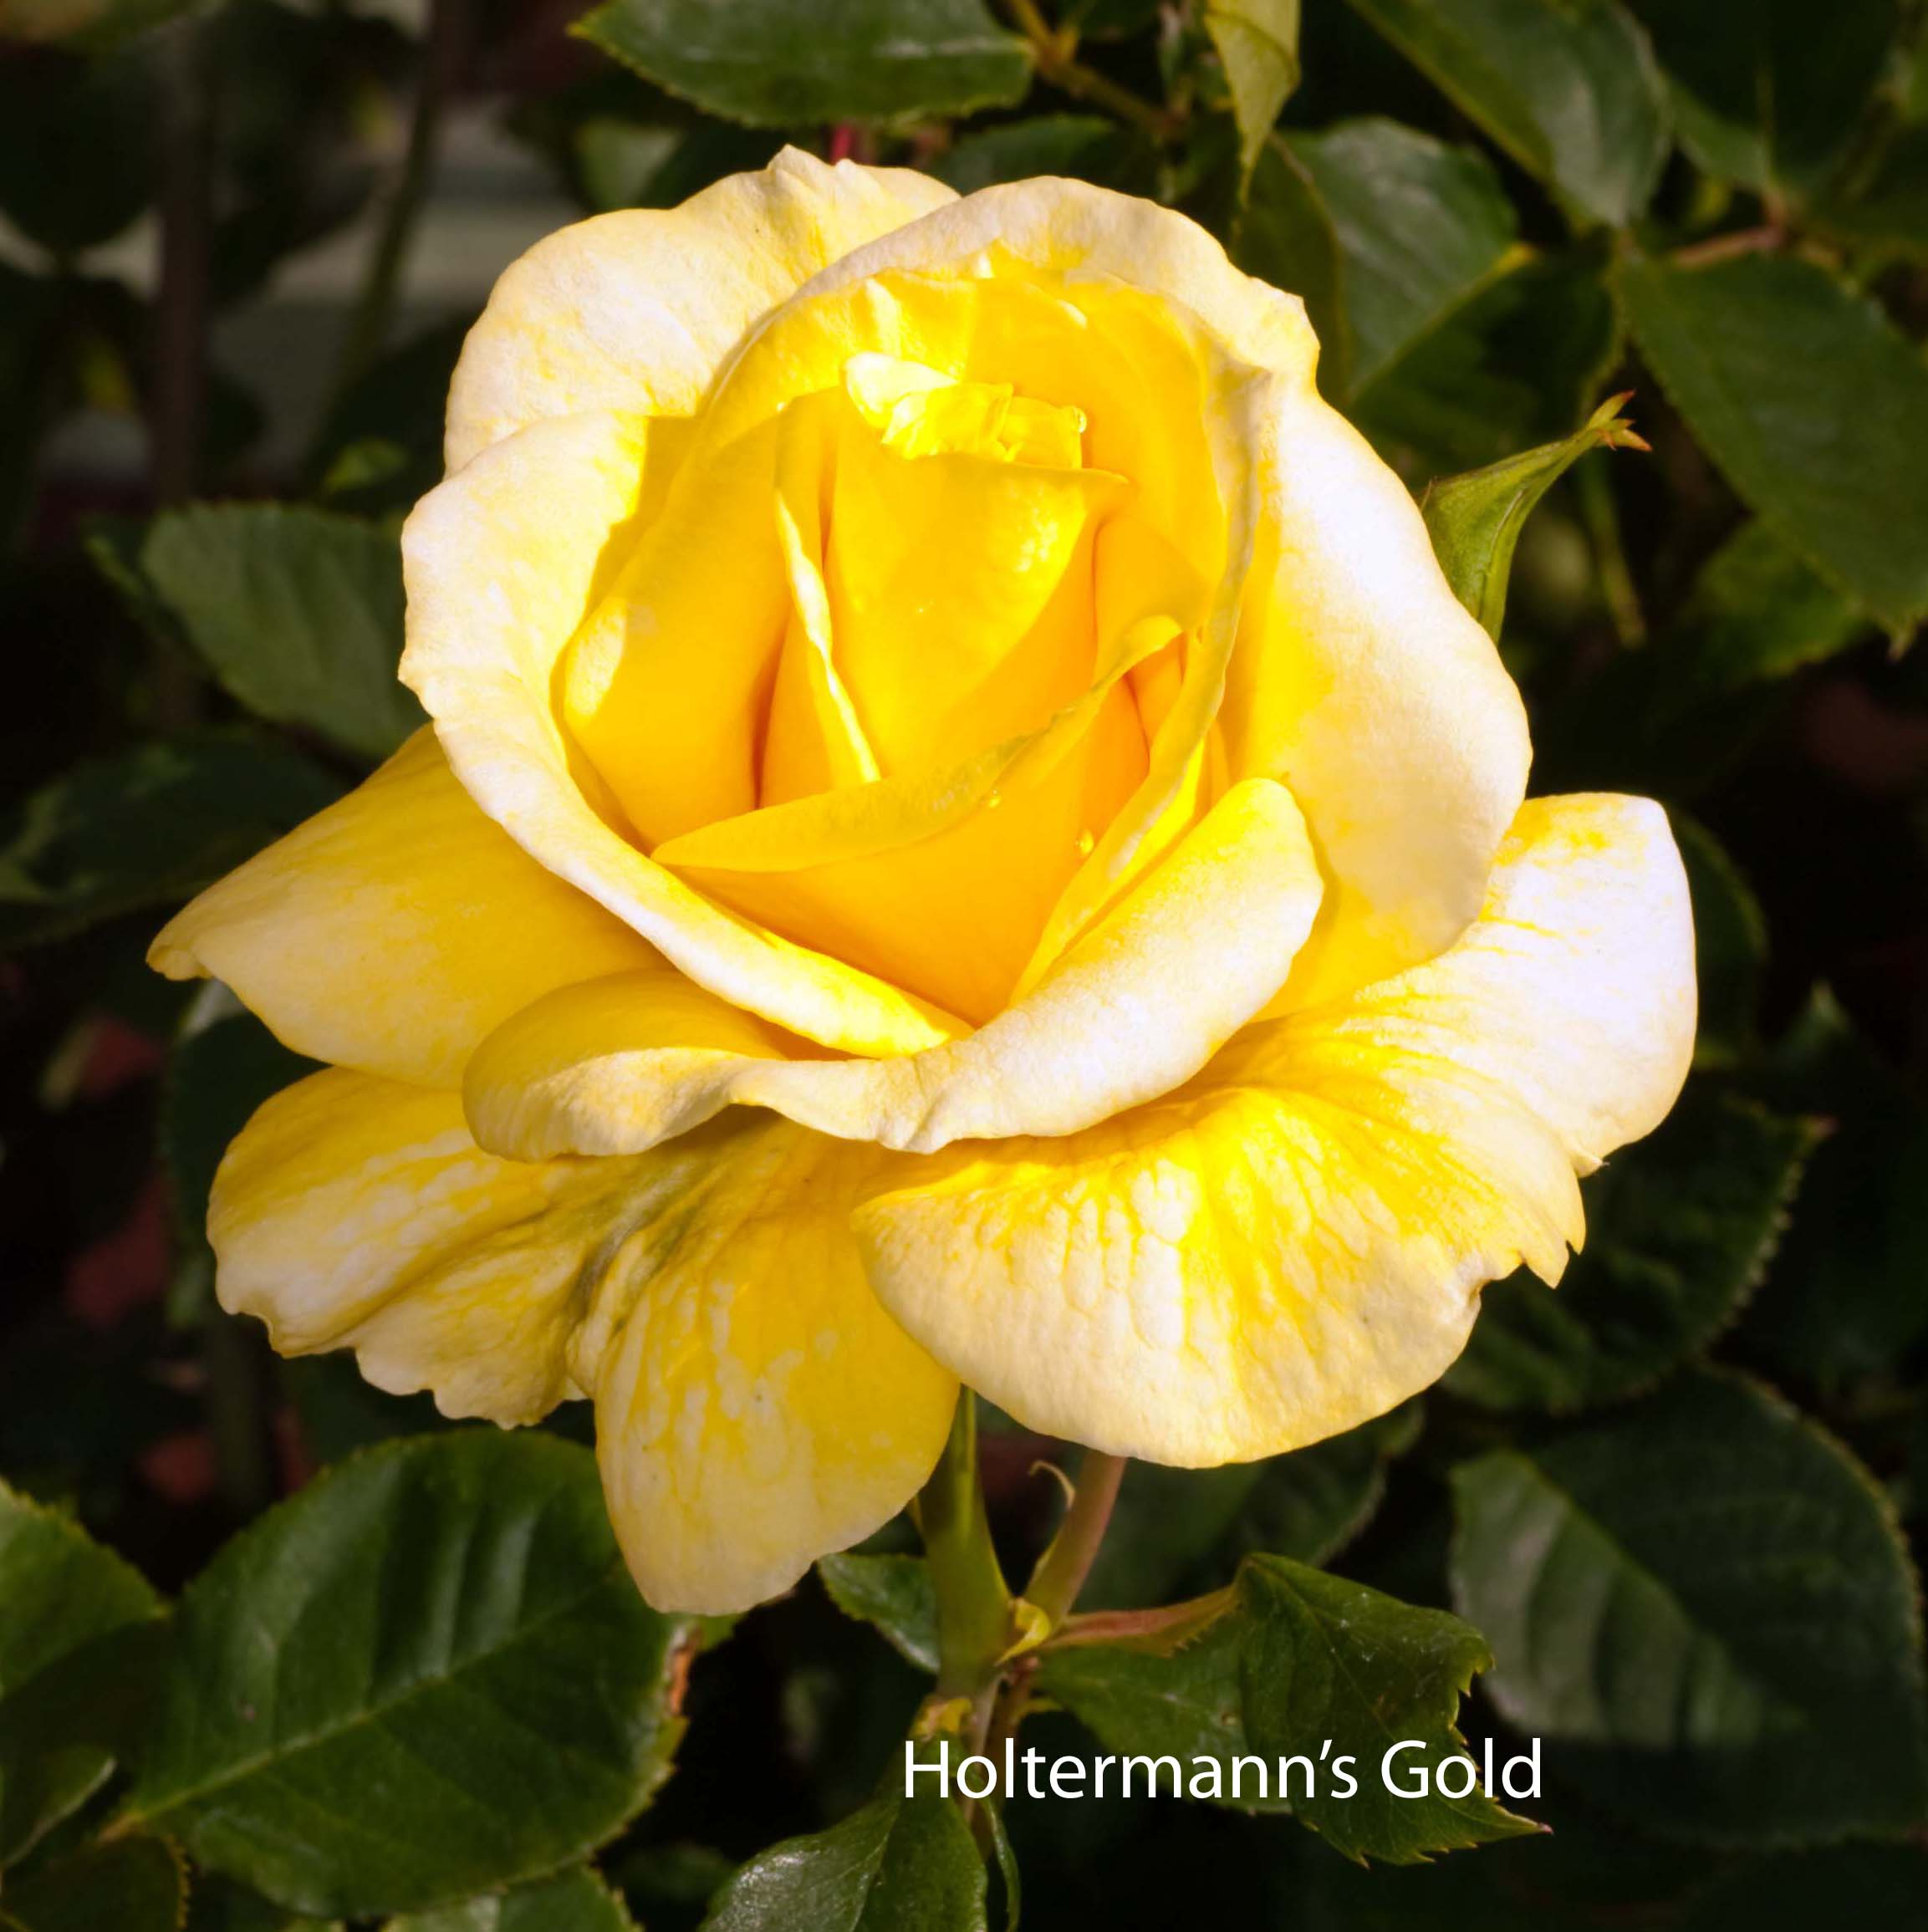 Holtermann's Gold